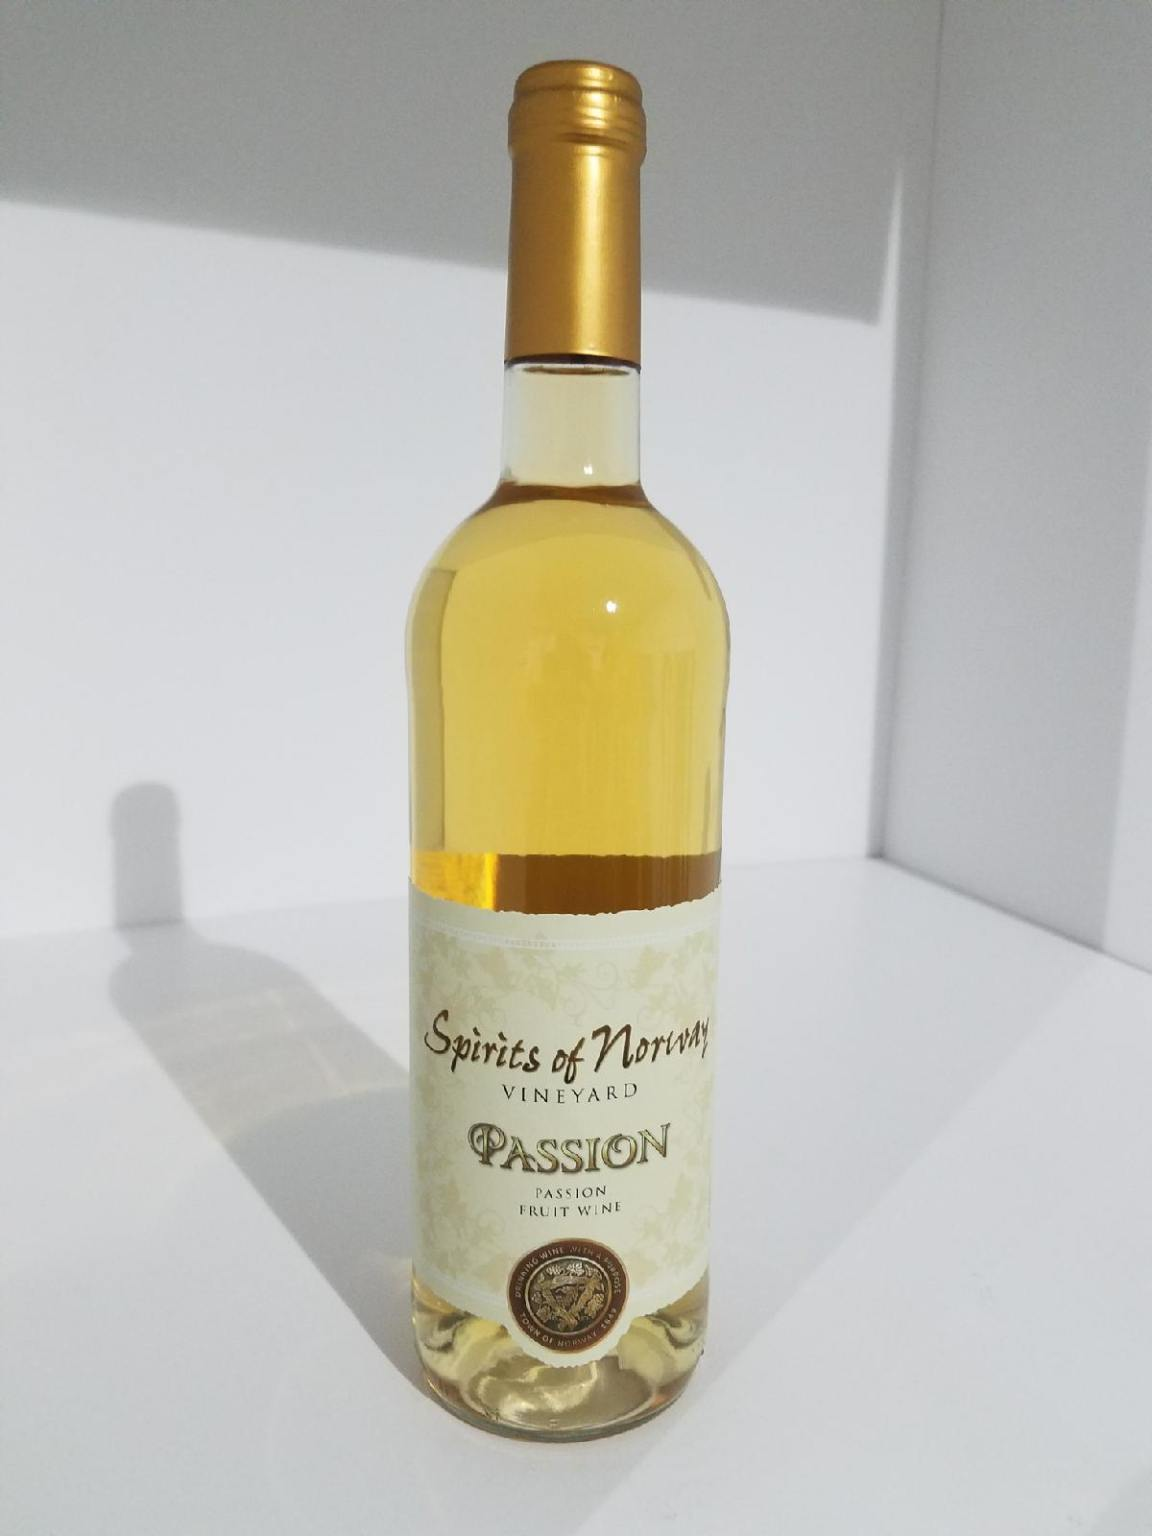 Passion New Release Spirits Of Norway Vineyard